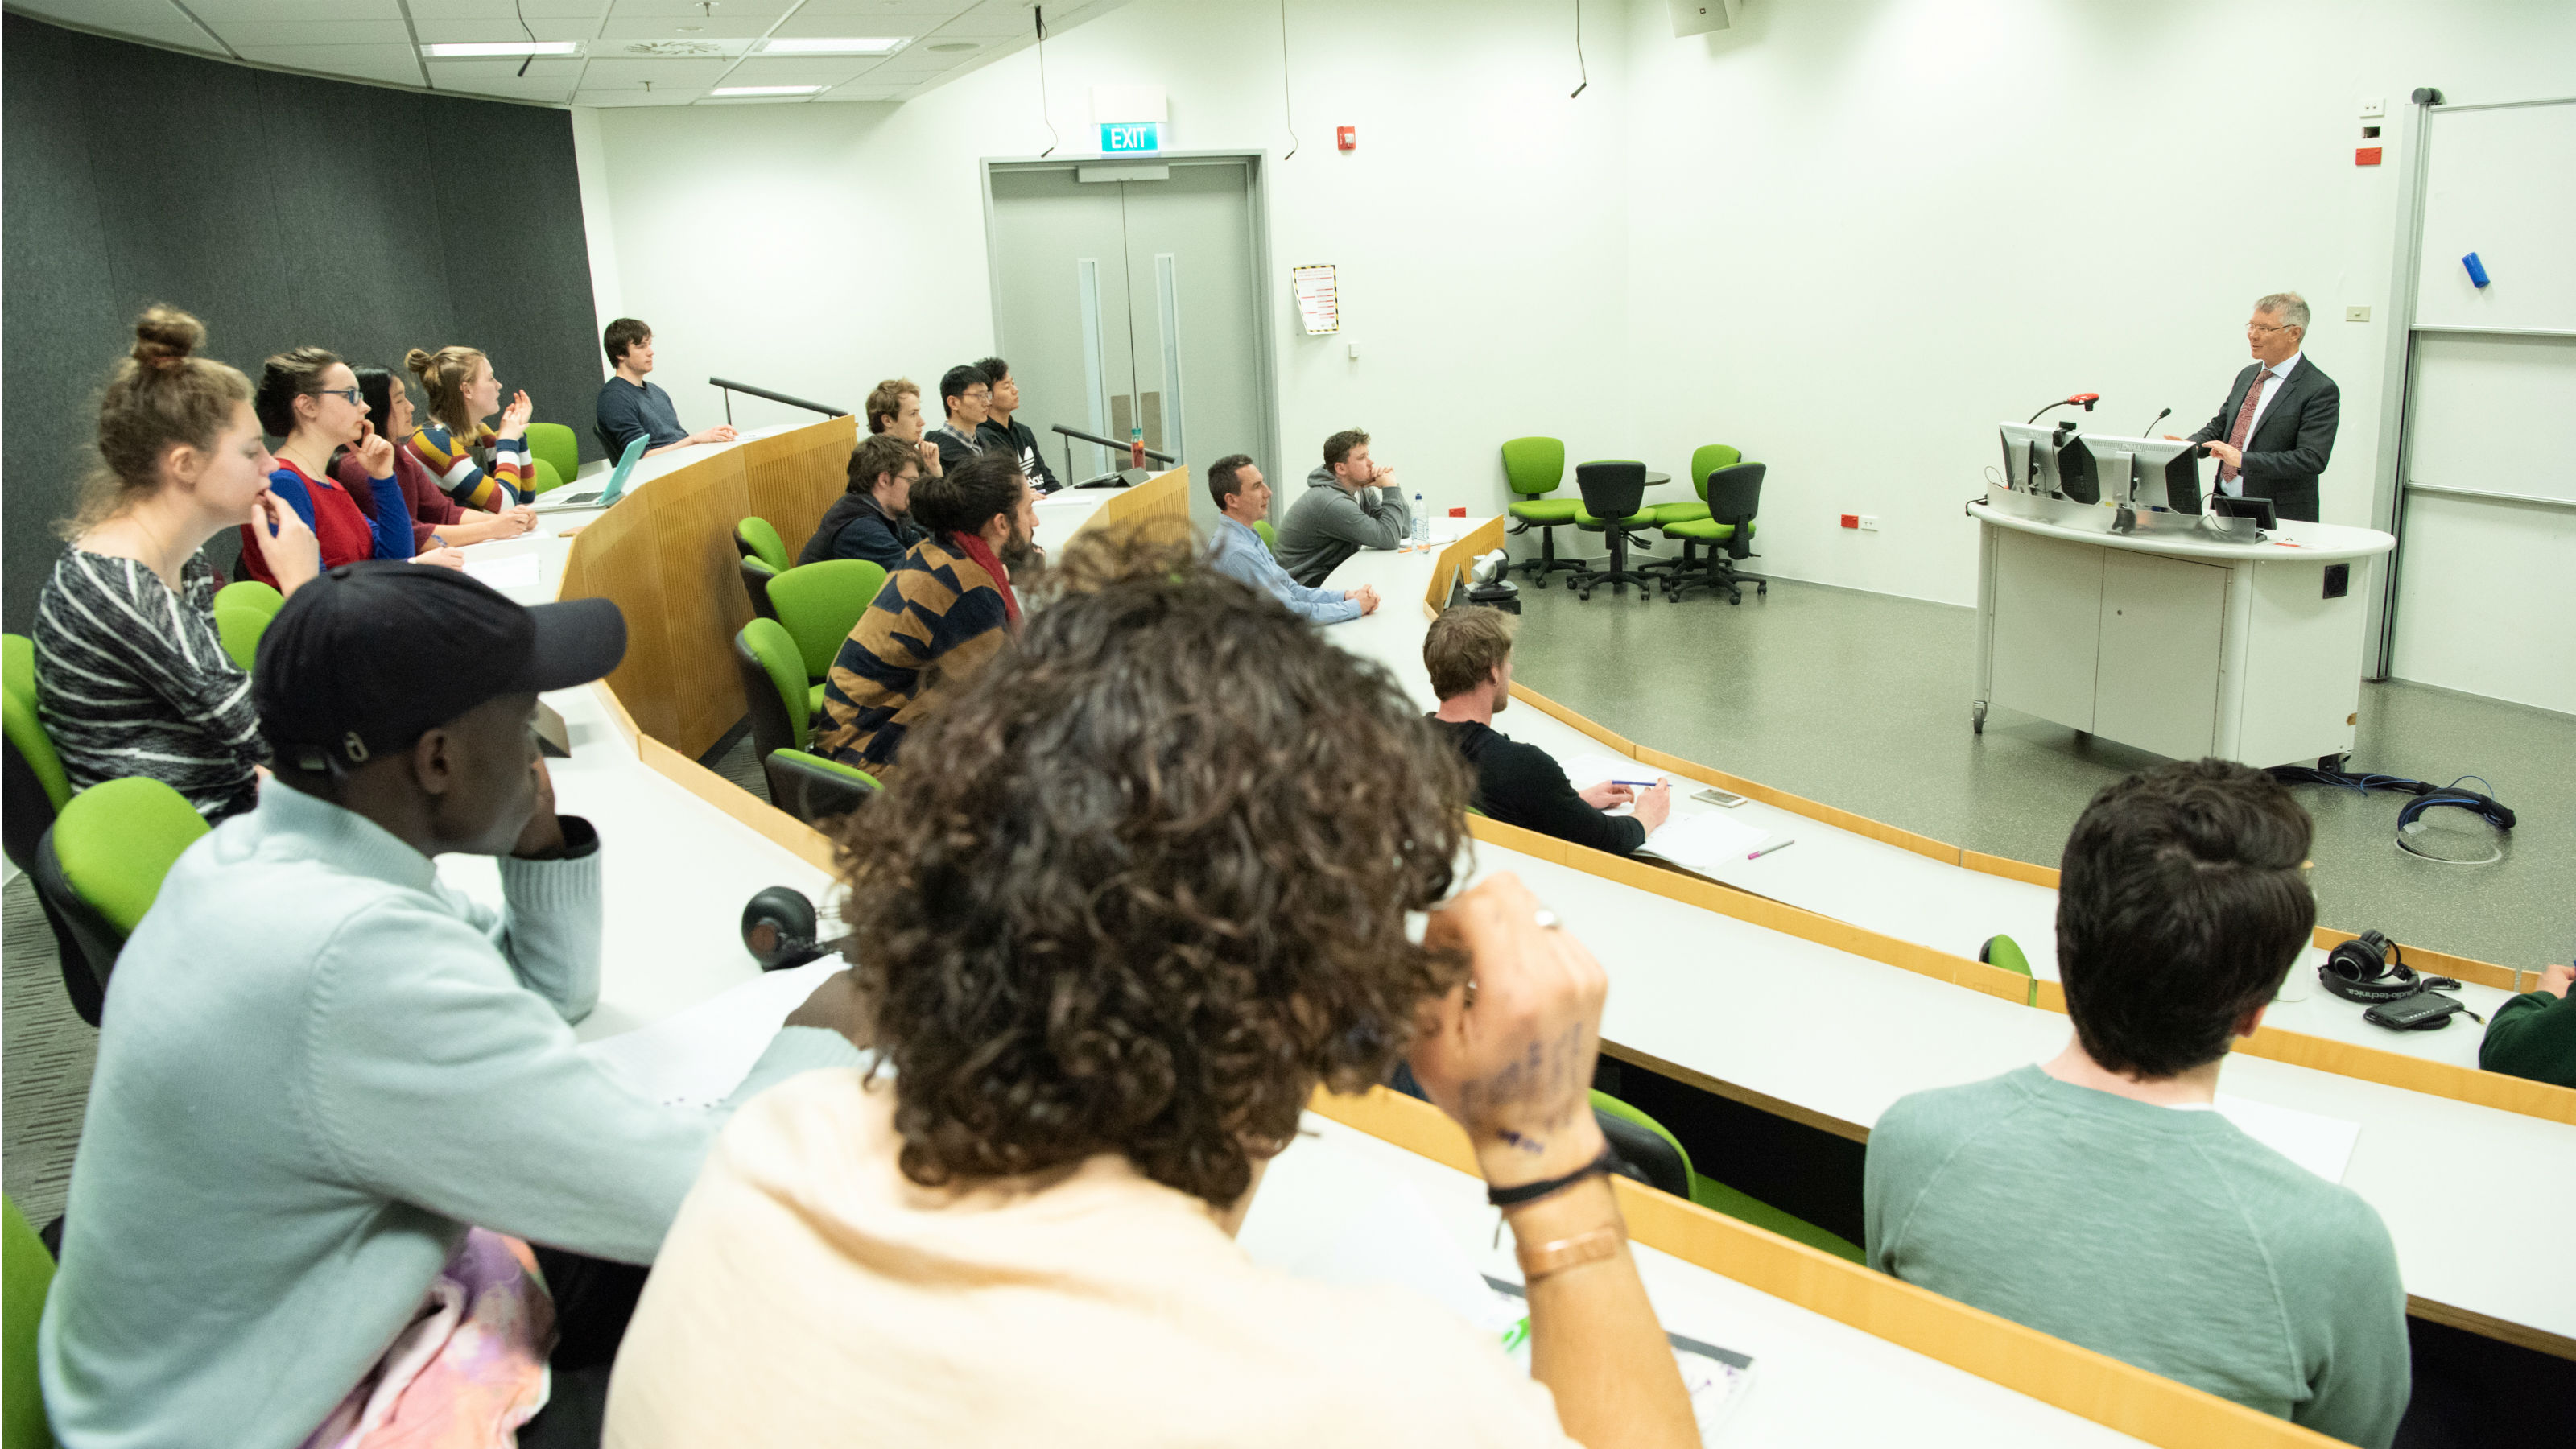 Hon David Parker talks to students and lecturers in a lecture theatre.